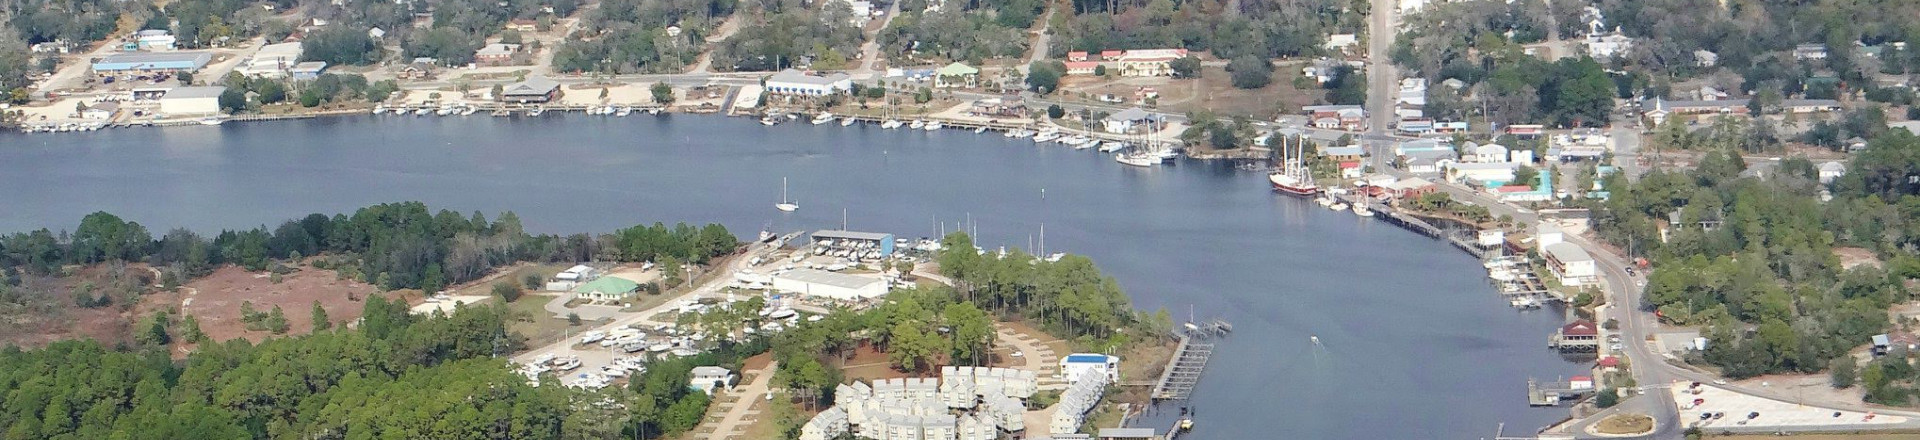 Carrabelle Flordia Aerial View